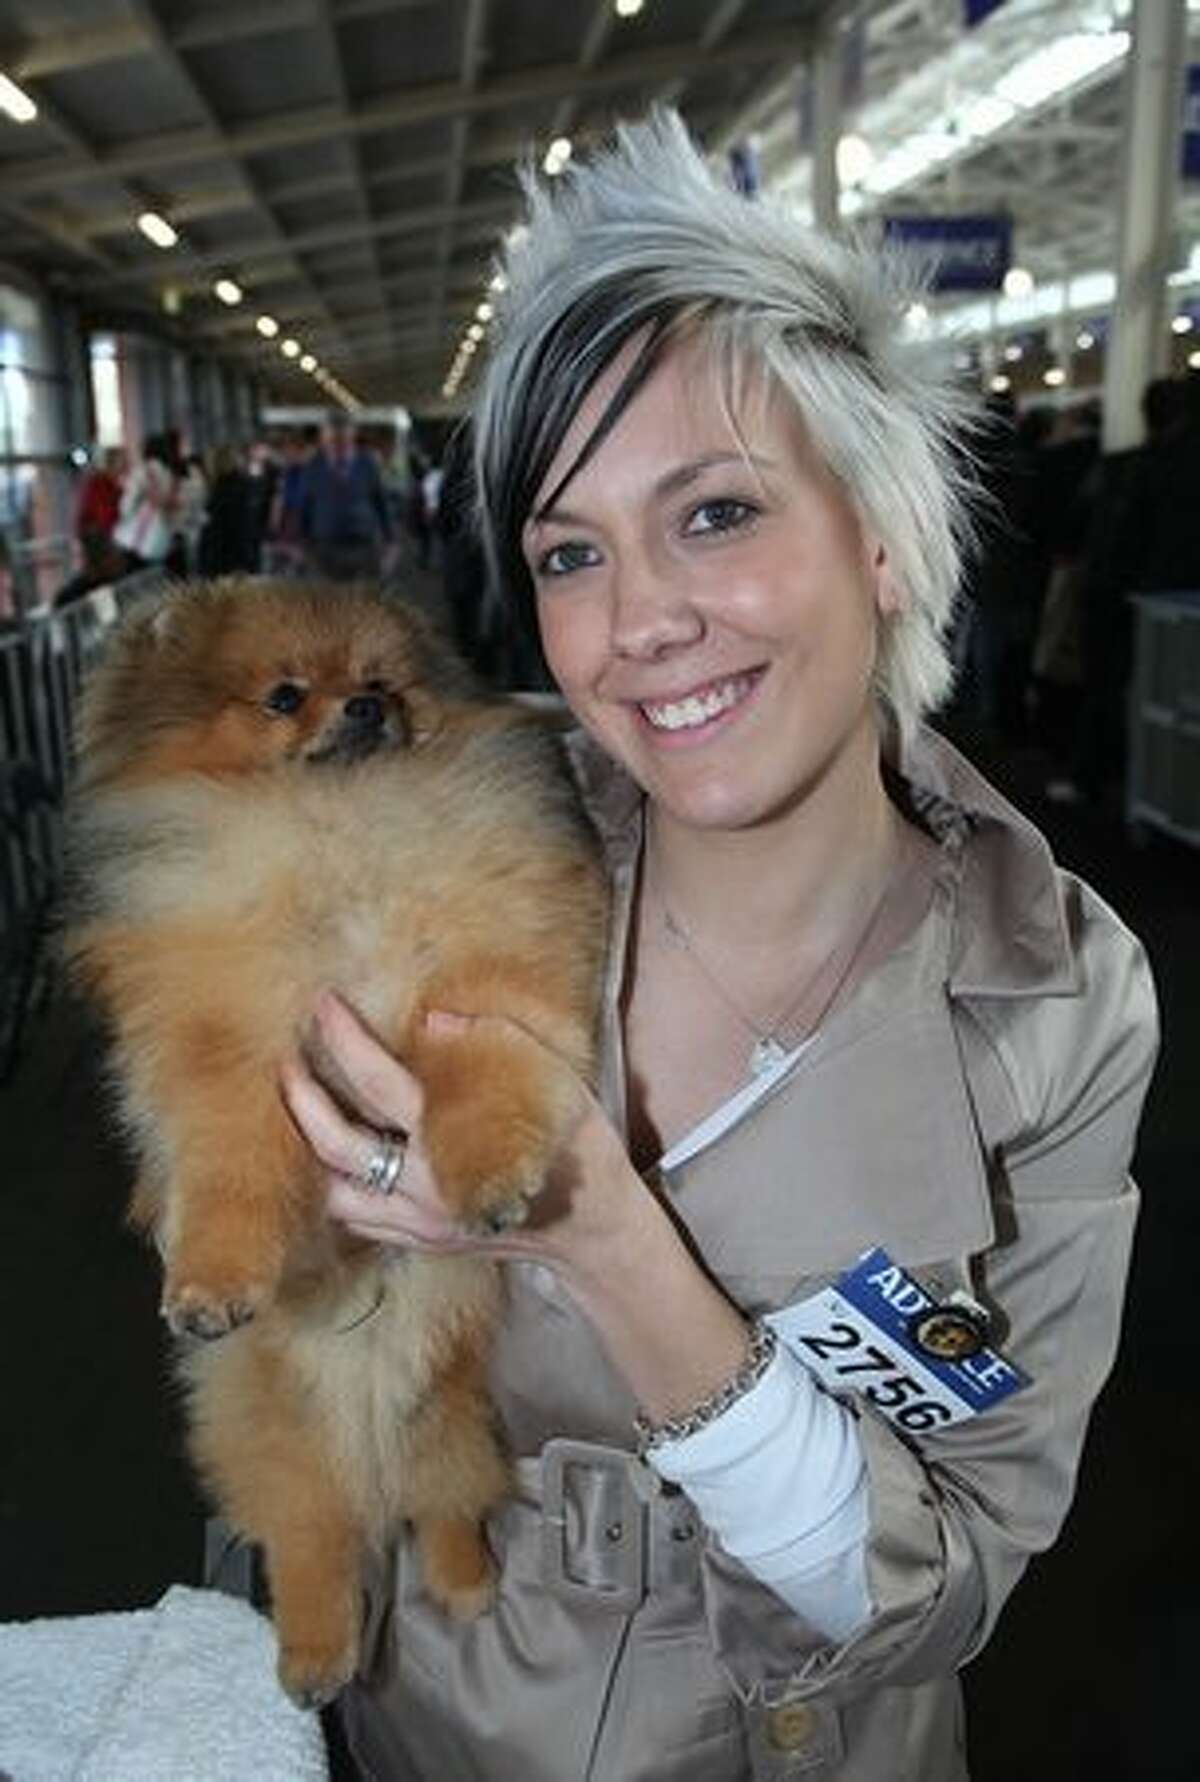 A woman poses with her dog at the Royal Melbourne Show on September 18, 2010 in Melbourne, Australia.